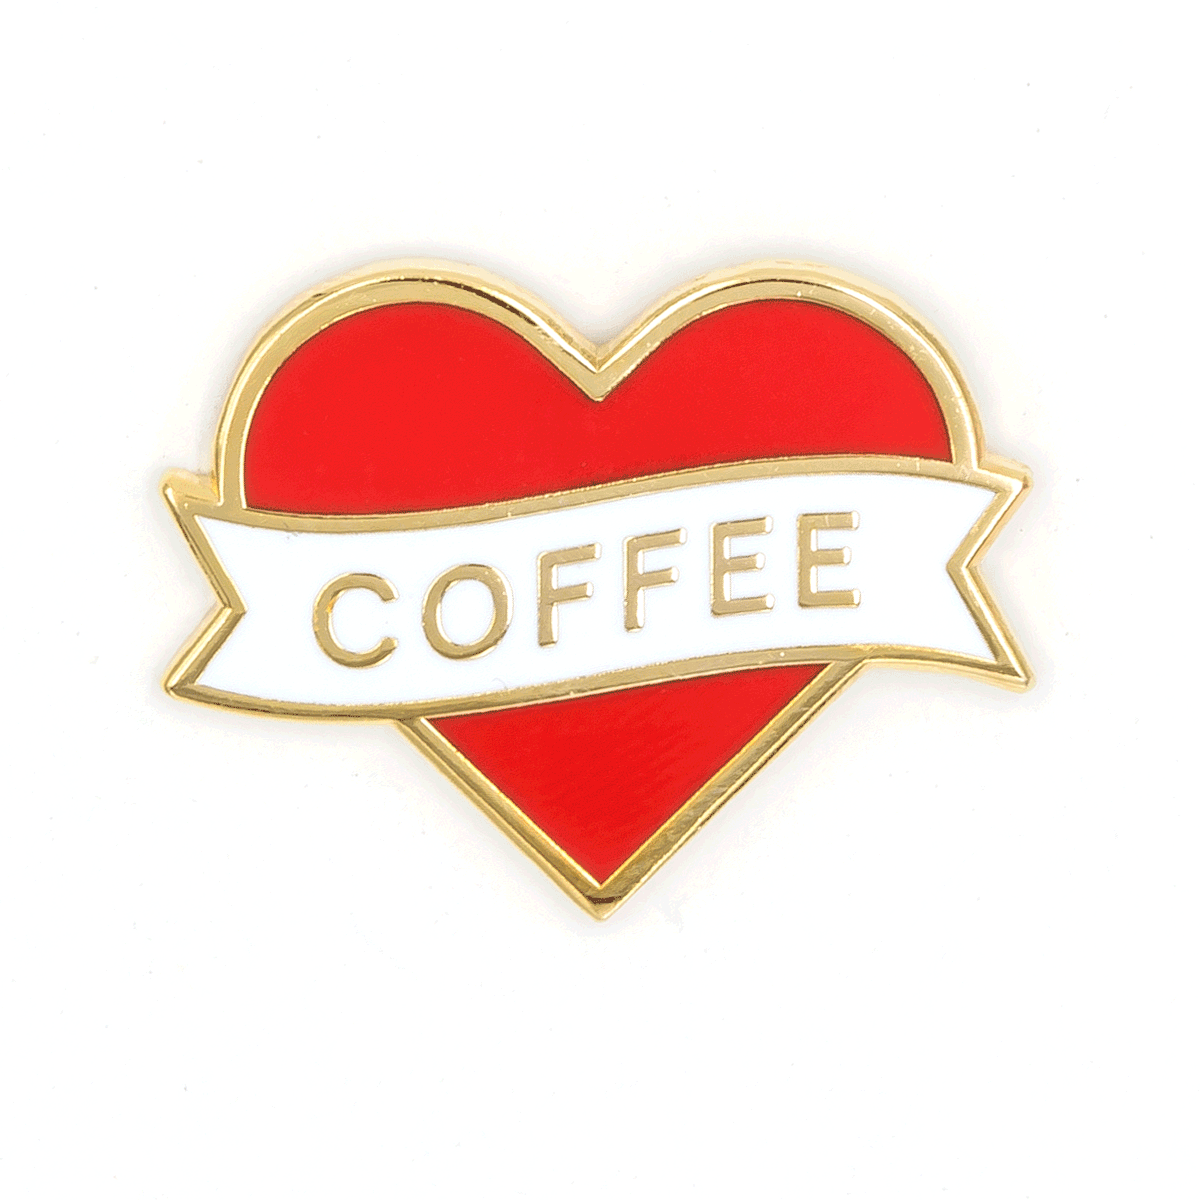 These Are Things - Heart Coffee Enamel Pin - Two Penny Blue